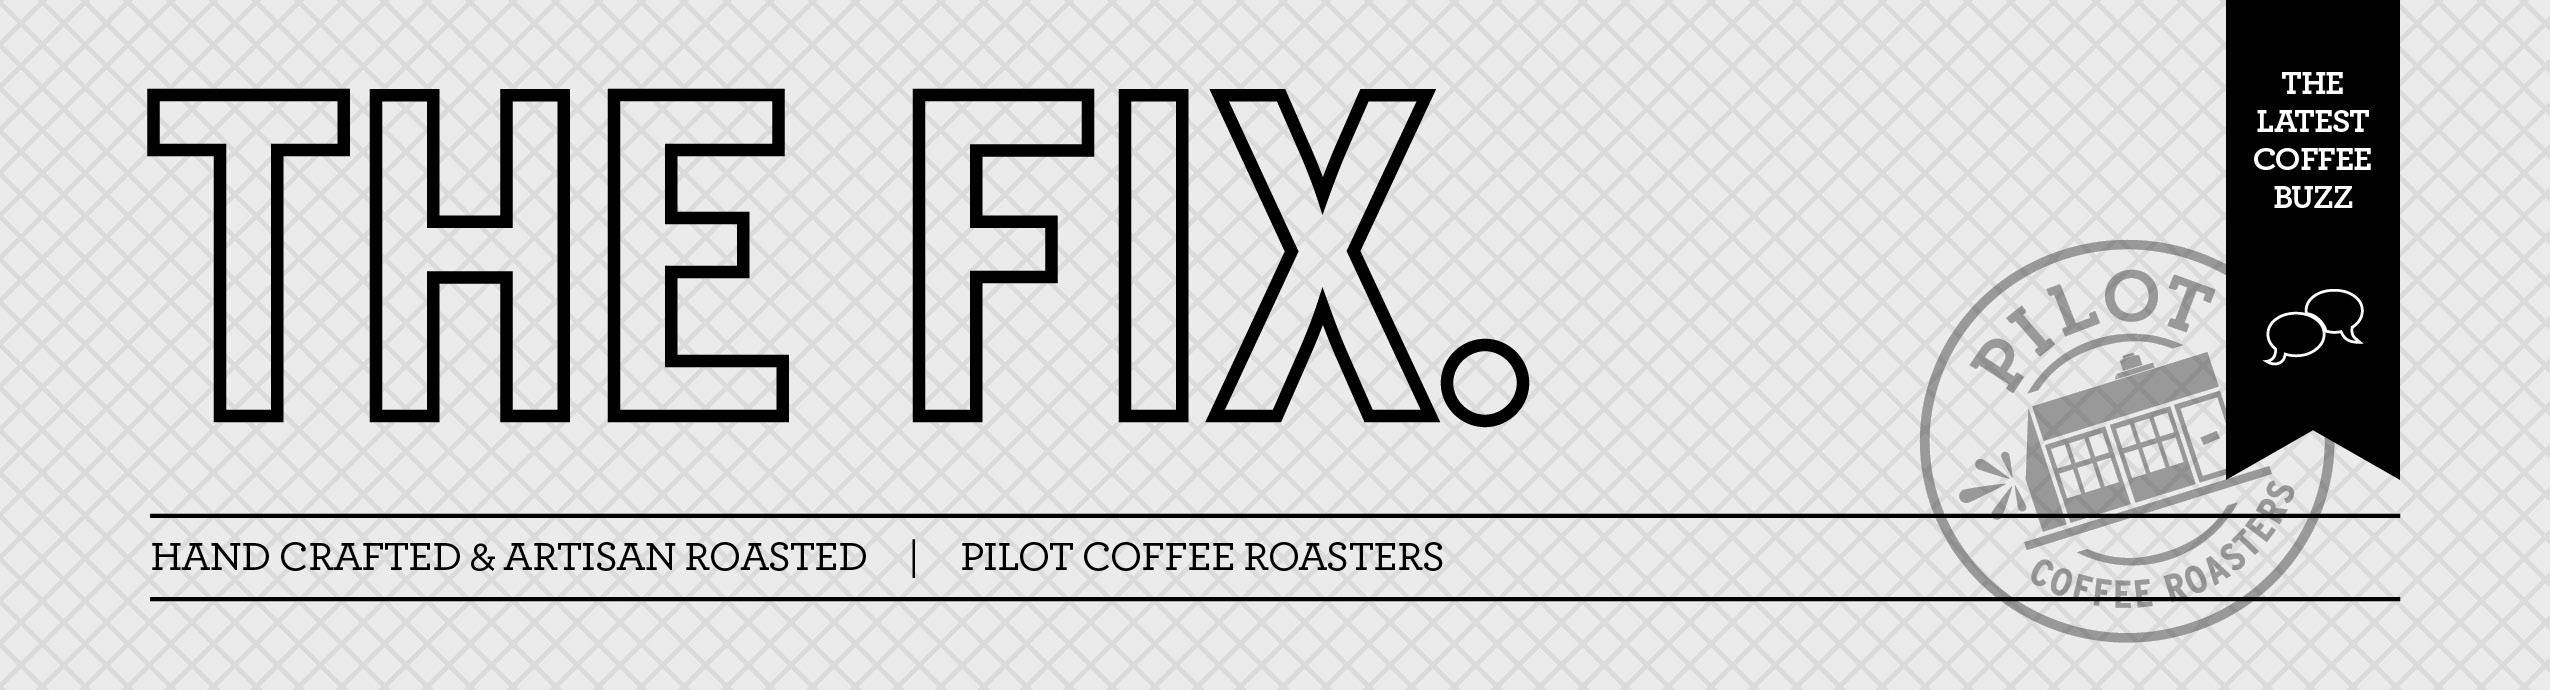 The Fix. Pilot Coffee Roasters Bi-weekly Newsletter.